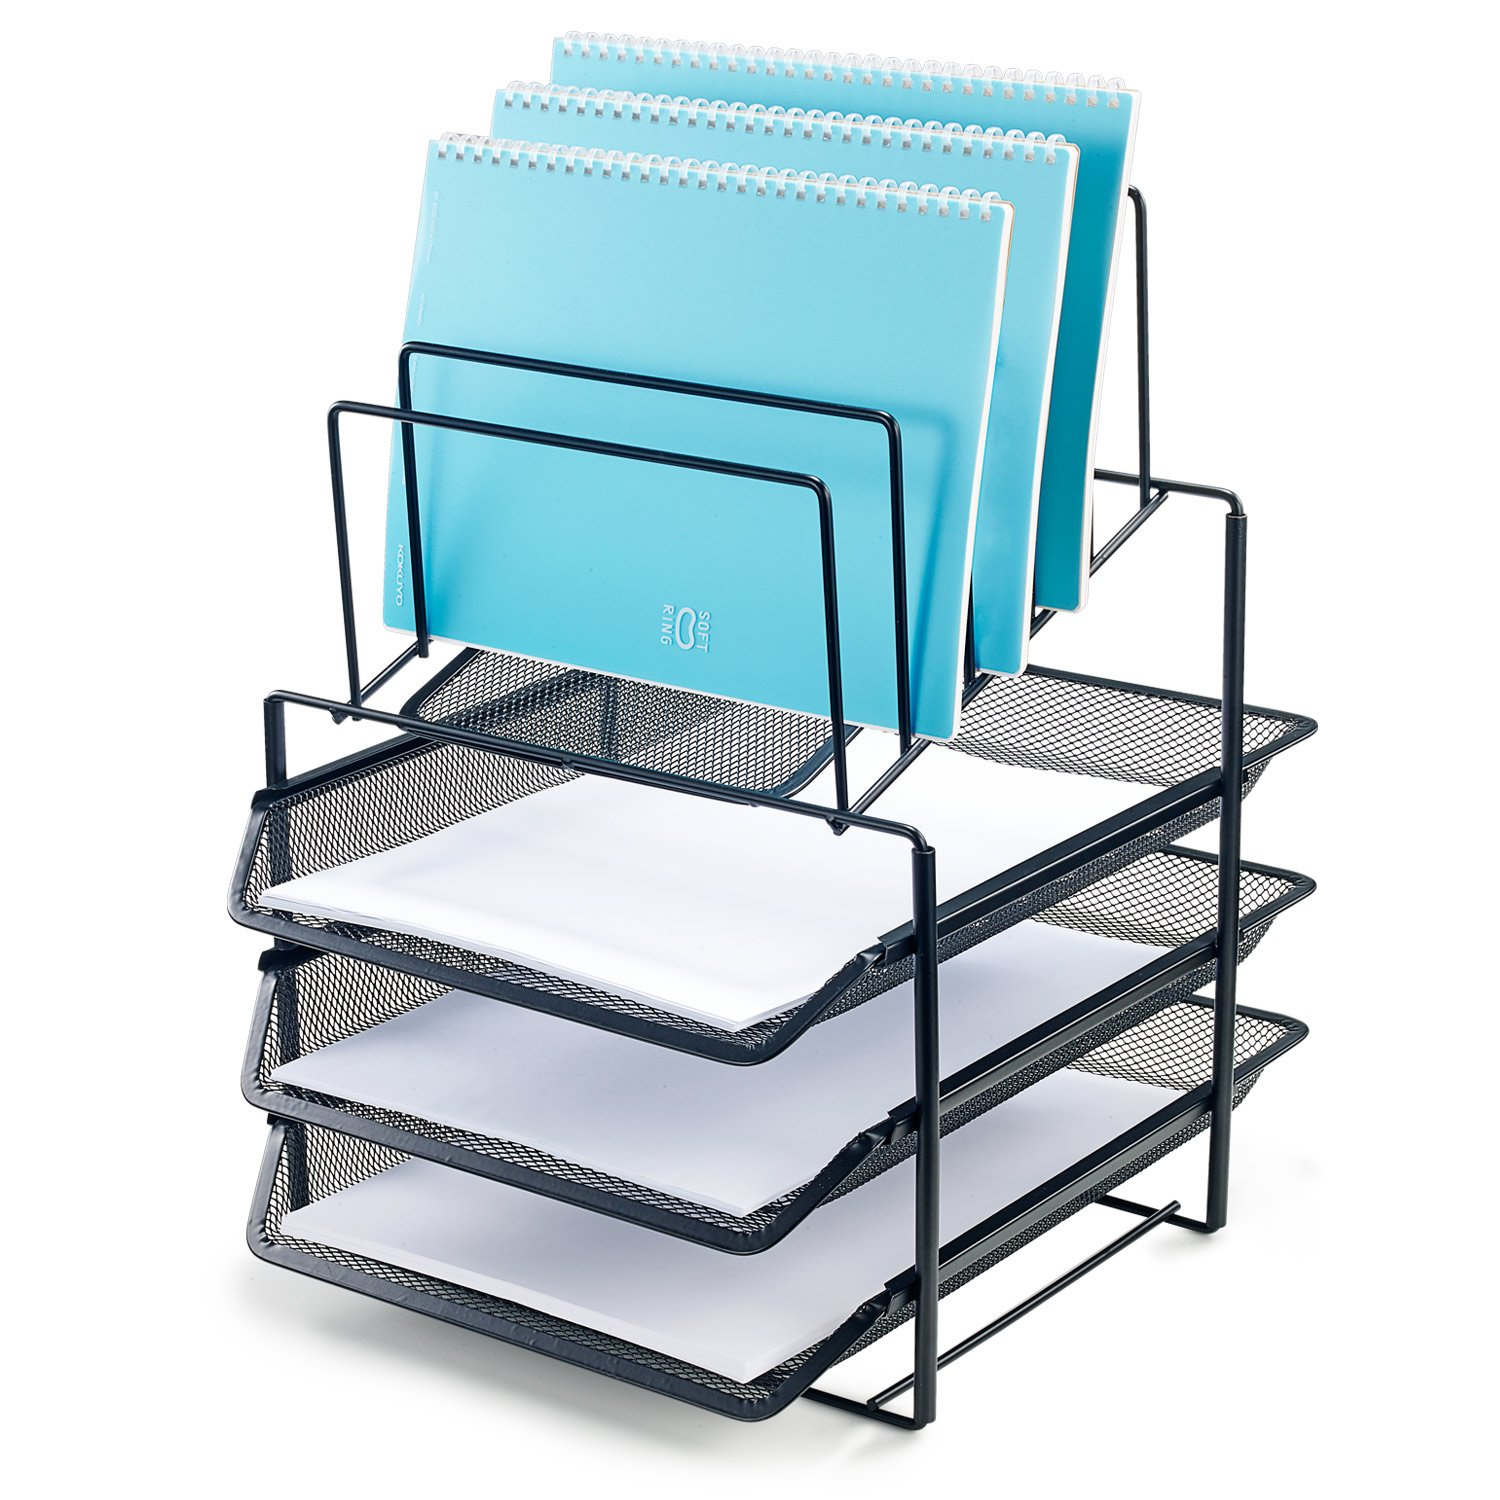 Bonsaii Desk Organizer with 3-Tier Letter File Tray and 5 Stacking Sorter Section,Mesh File Office Organizer,Black (W6428)